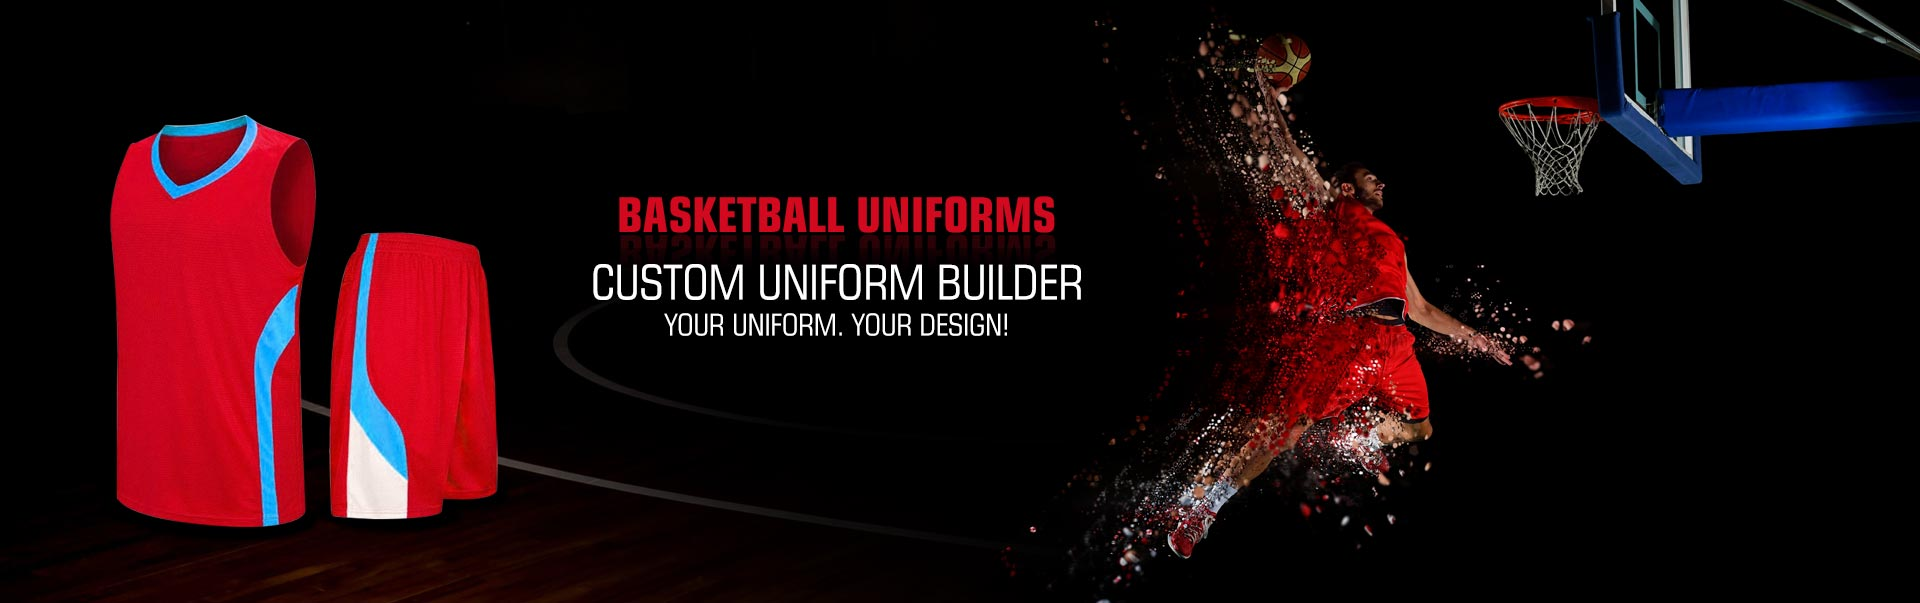 Basketball Uniforms Wholesaler, Suppliers in Provo